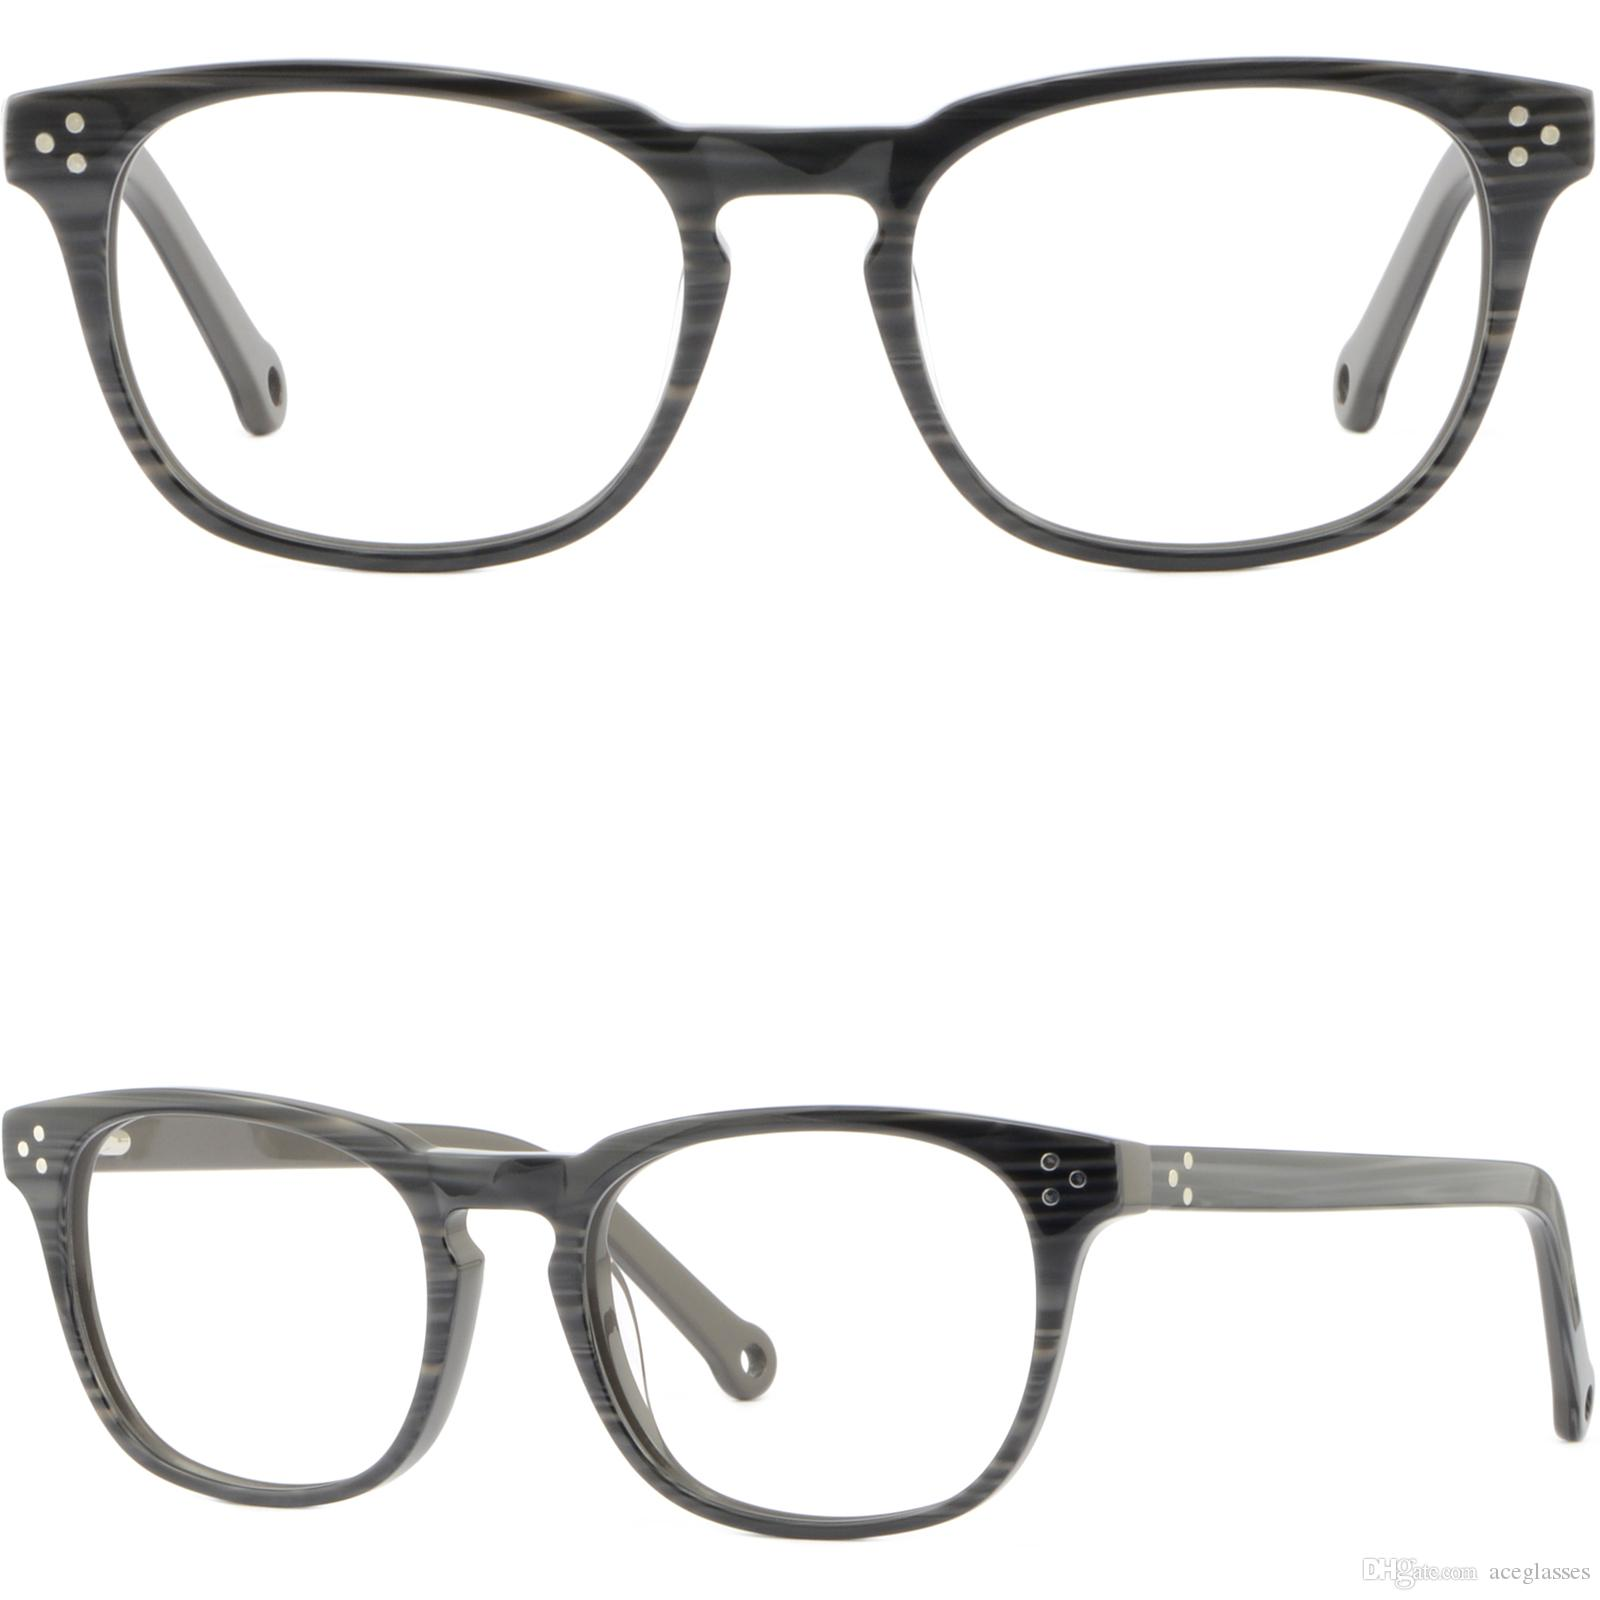 79f472567b6 Men s Women s Plastic Frames Spring Hinges Light Black Square ...